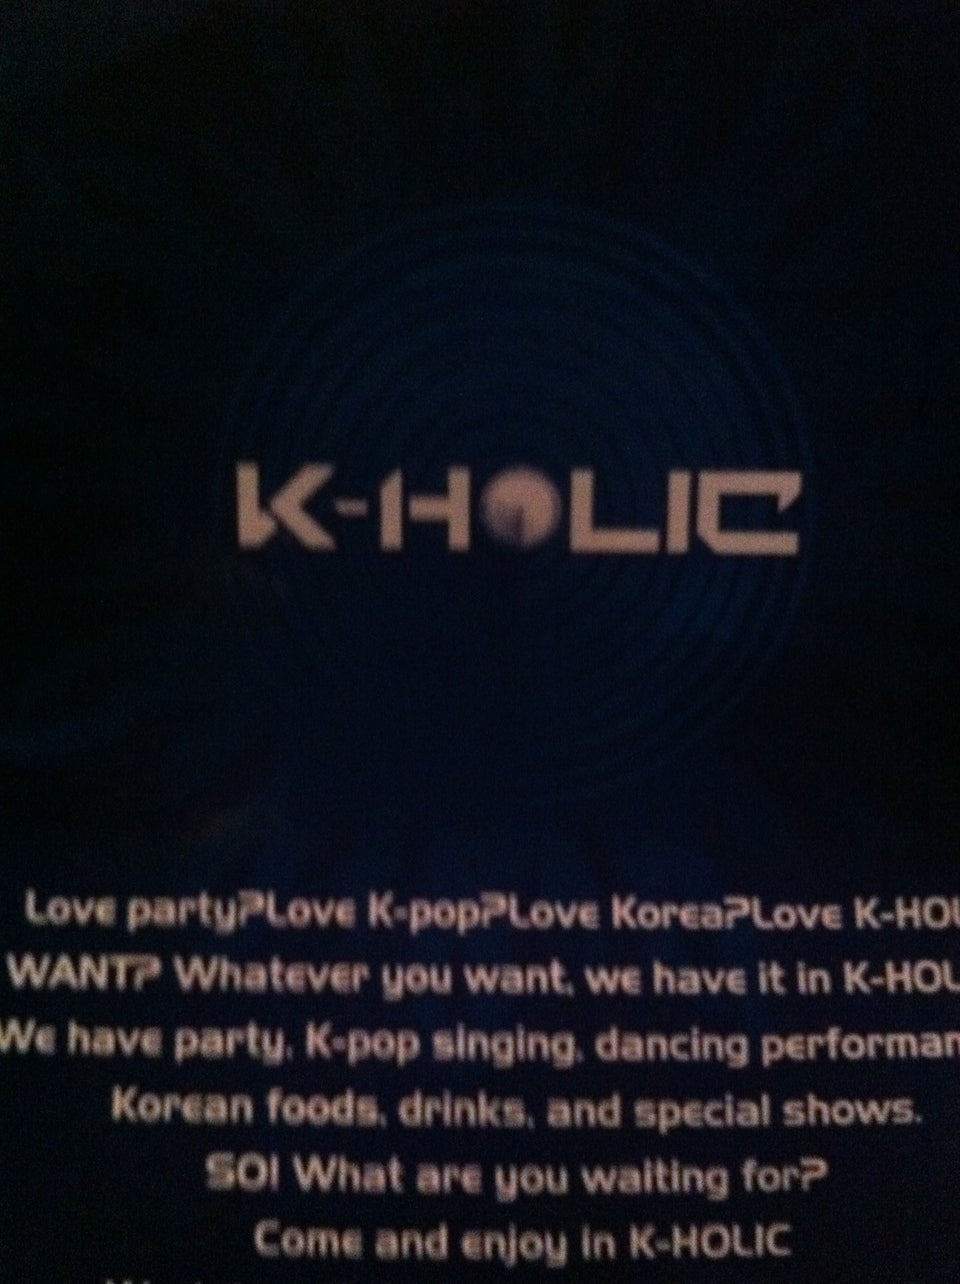 K-holic (korean Club)